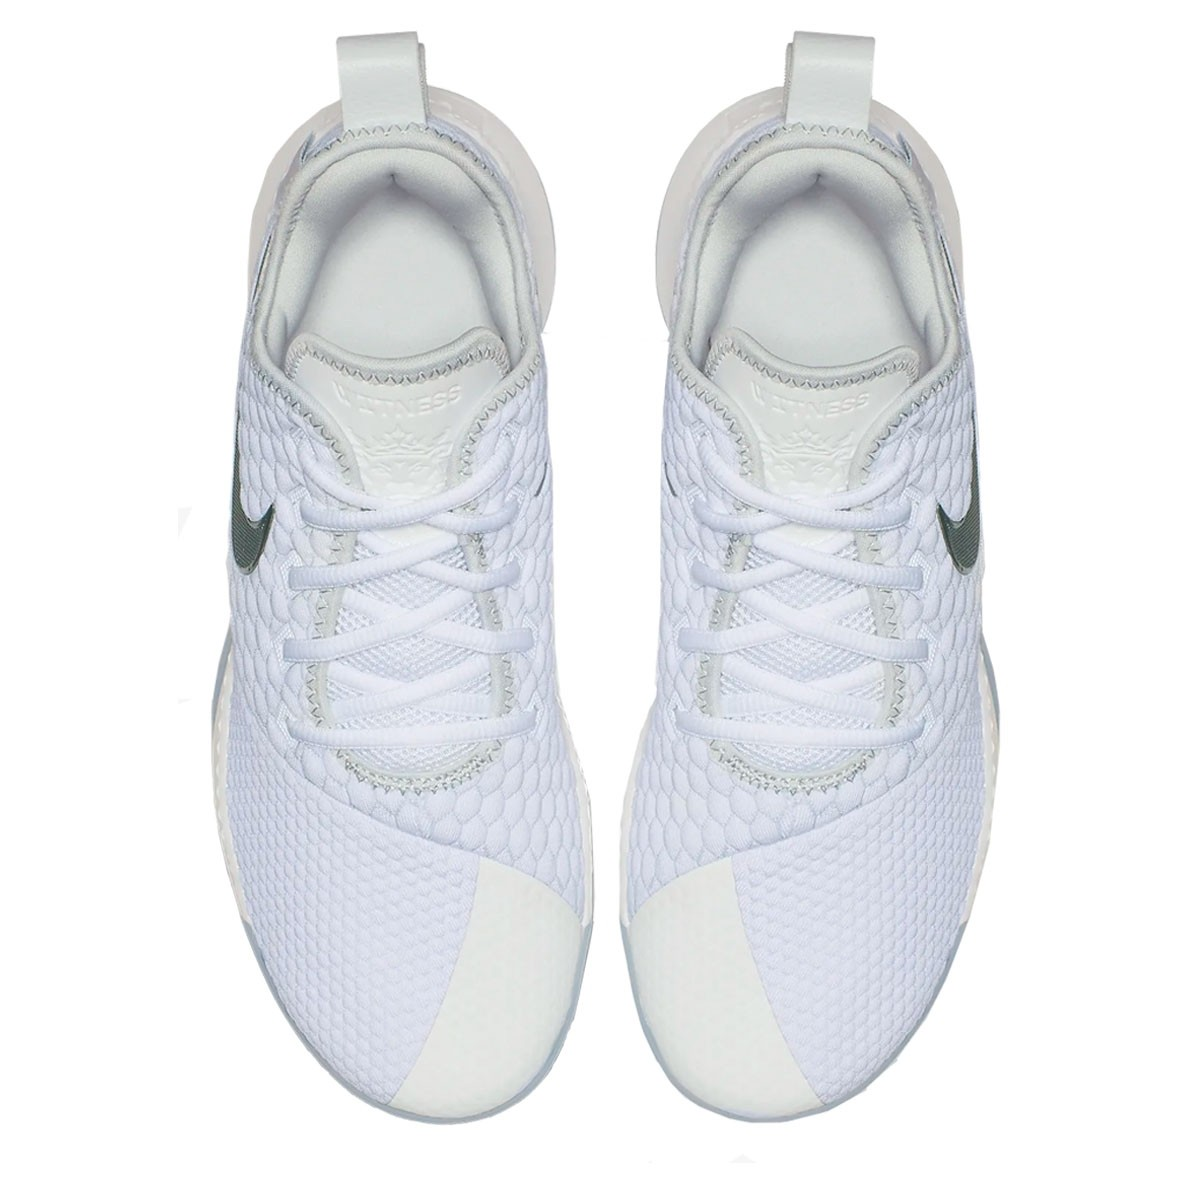 afb63d0b08331e Buy Nike Lebron Witness III  White Ice  Basketball shoes   sneakers